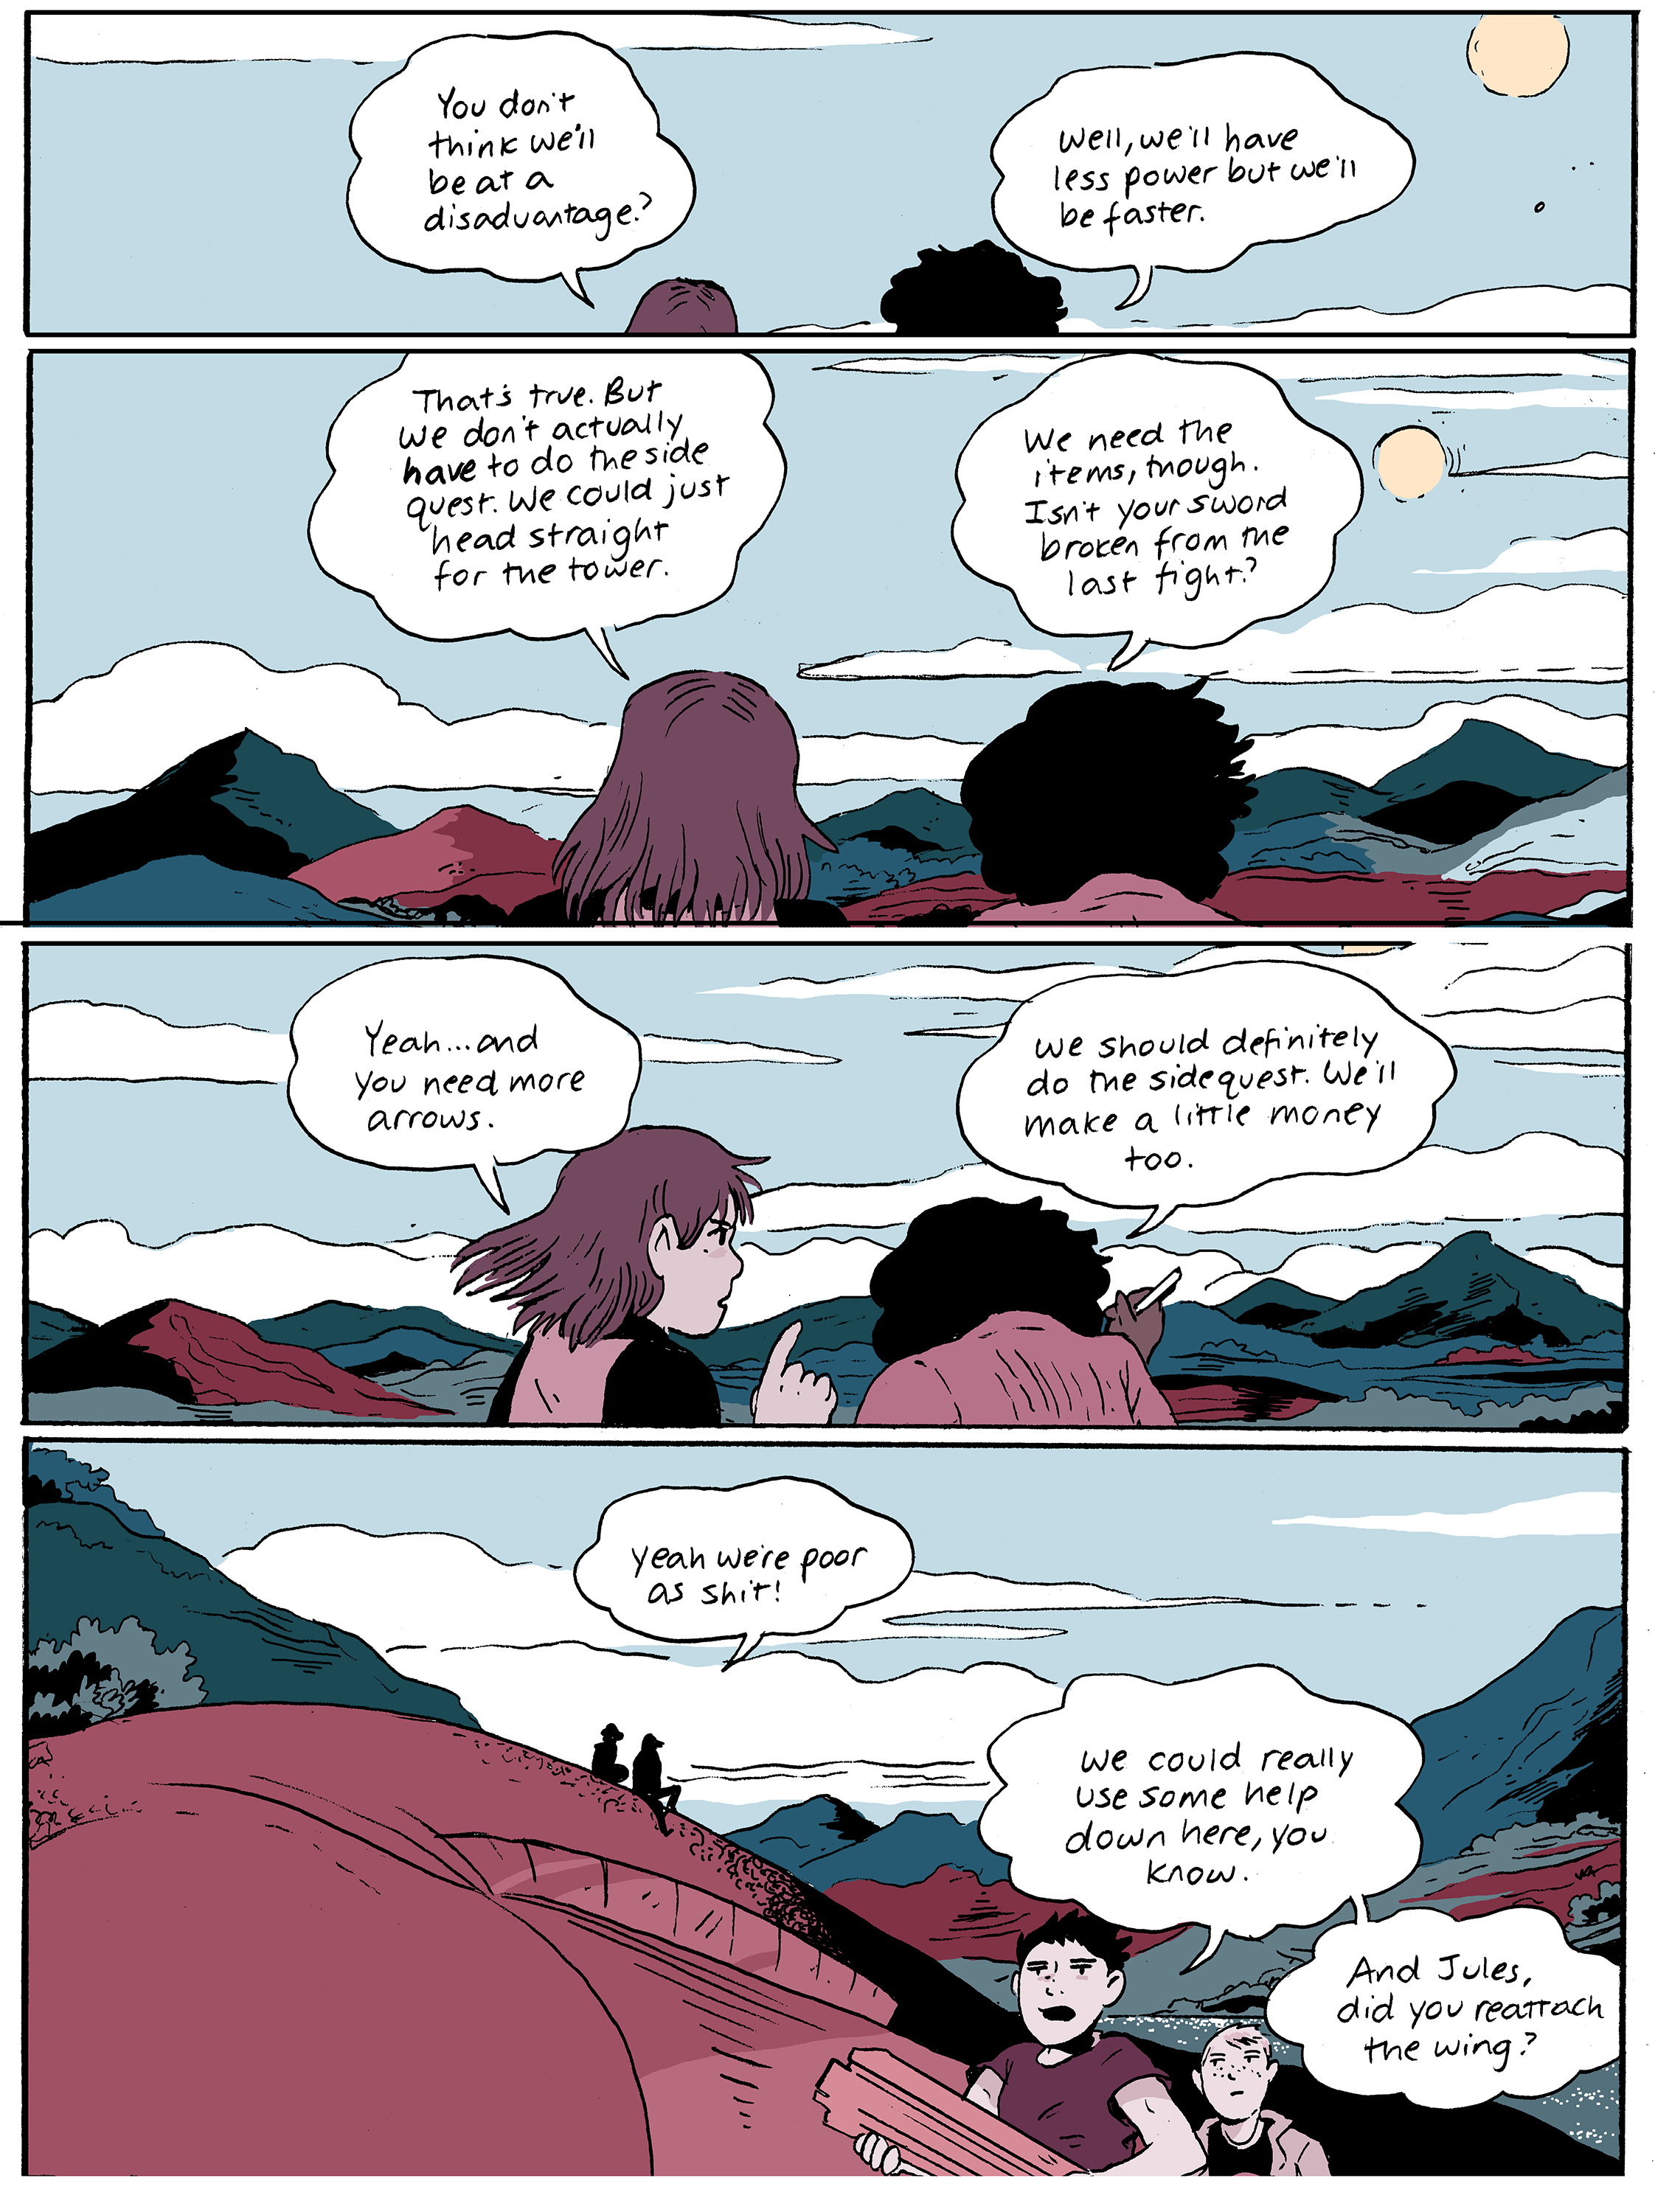 chapter20_page03.jpg